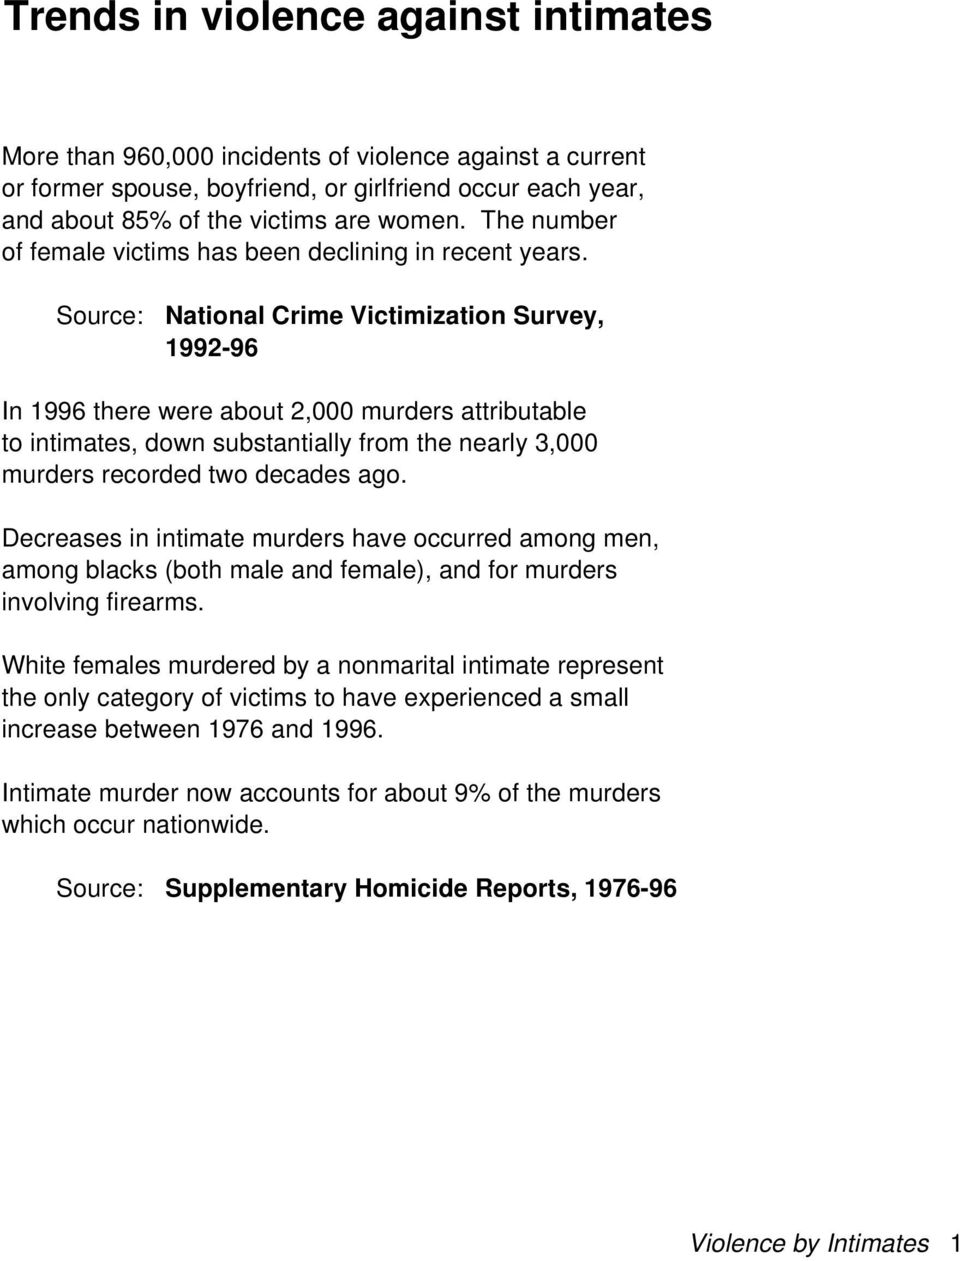 Source: National Crime Victimization Survey, 1992-96 In 1996 there were about 2,000 murders attributable to intimates, down substantially from the nearly 3,000 murders recorded two decades ago.